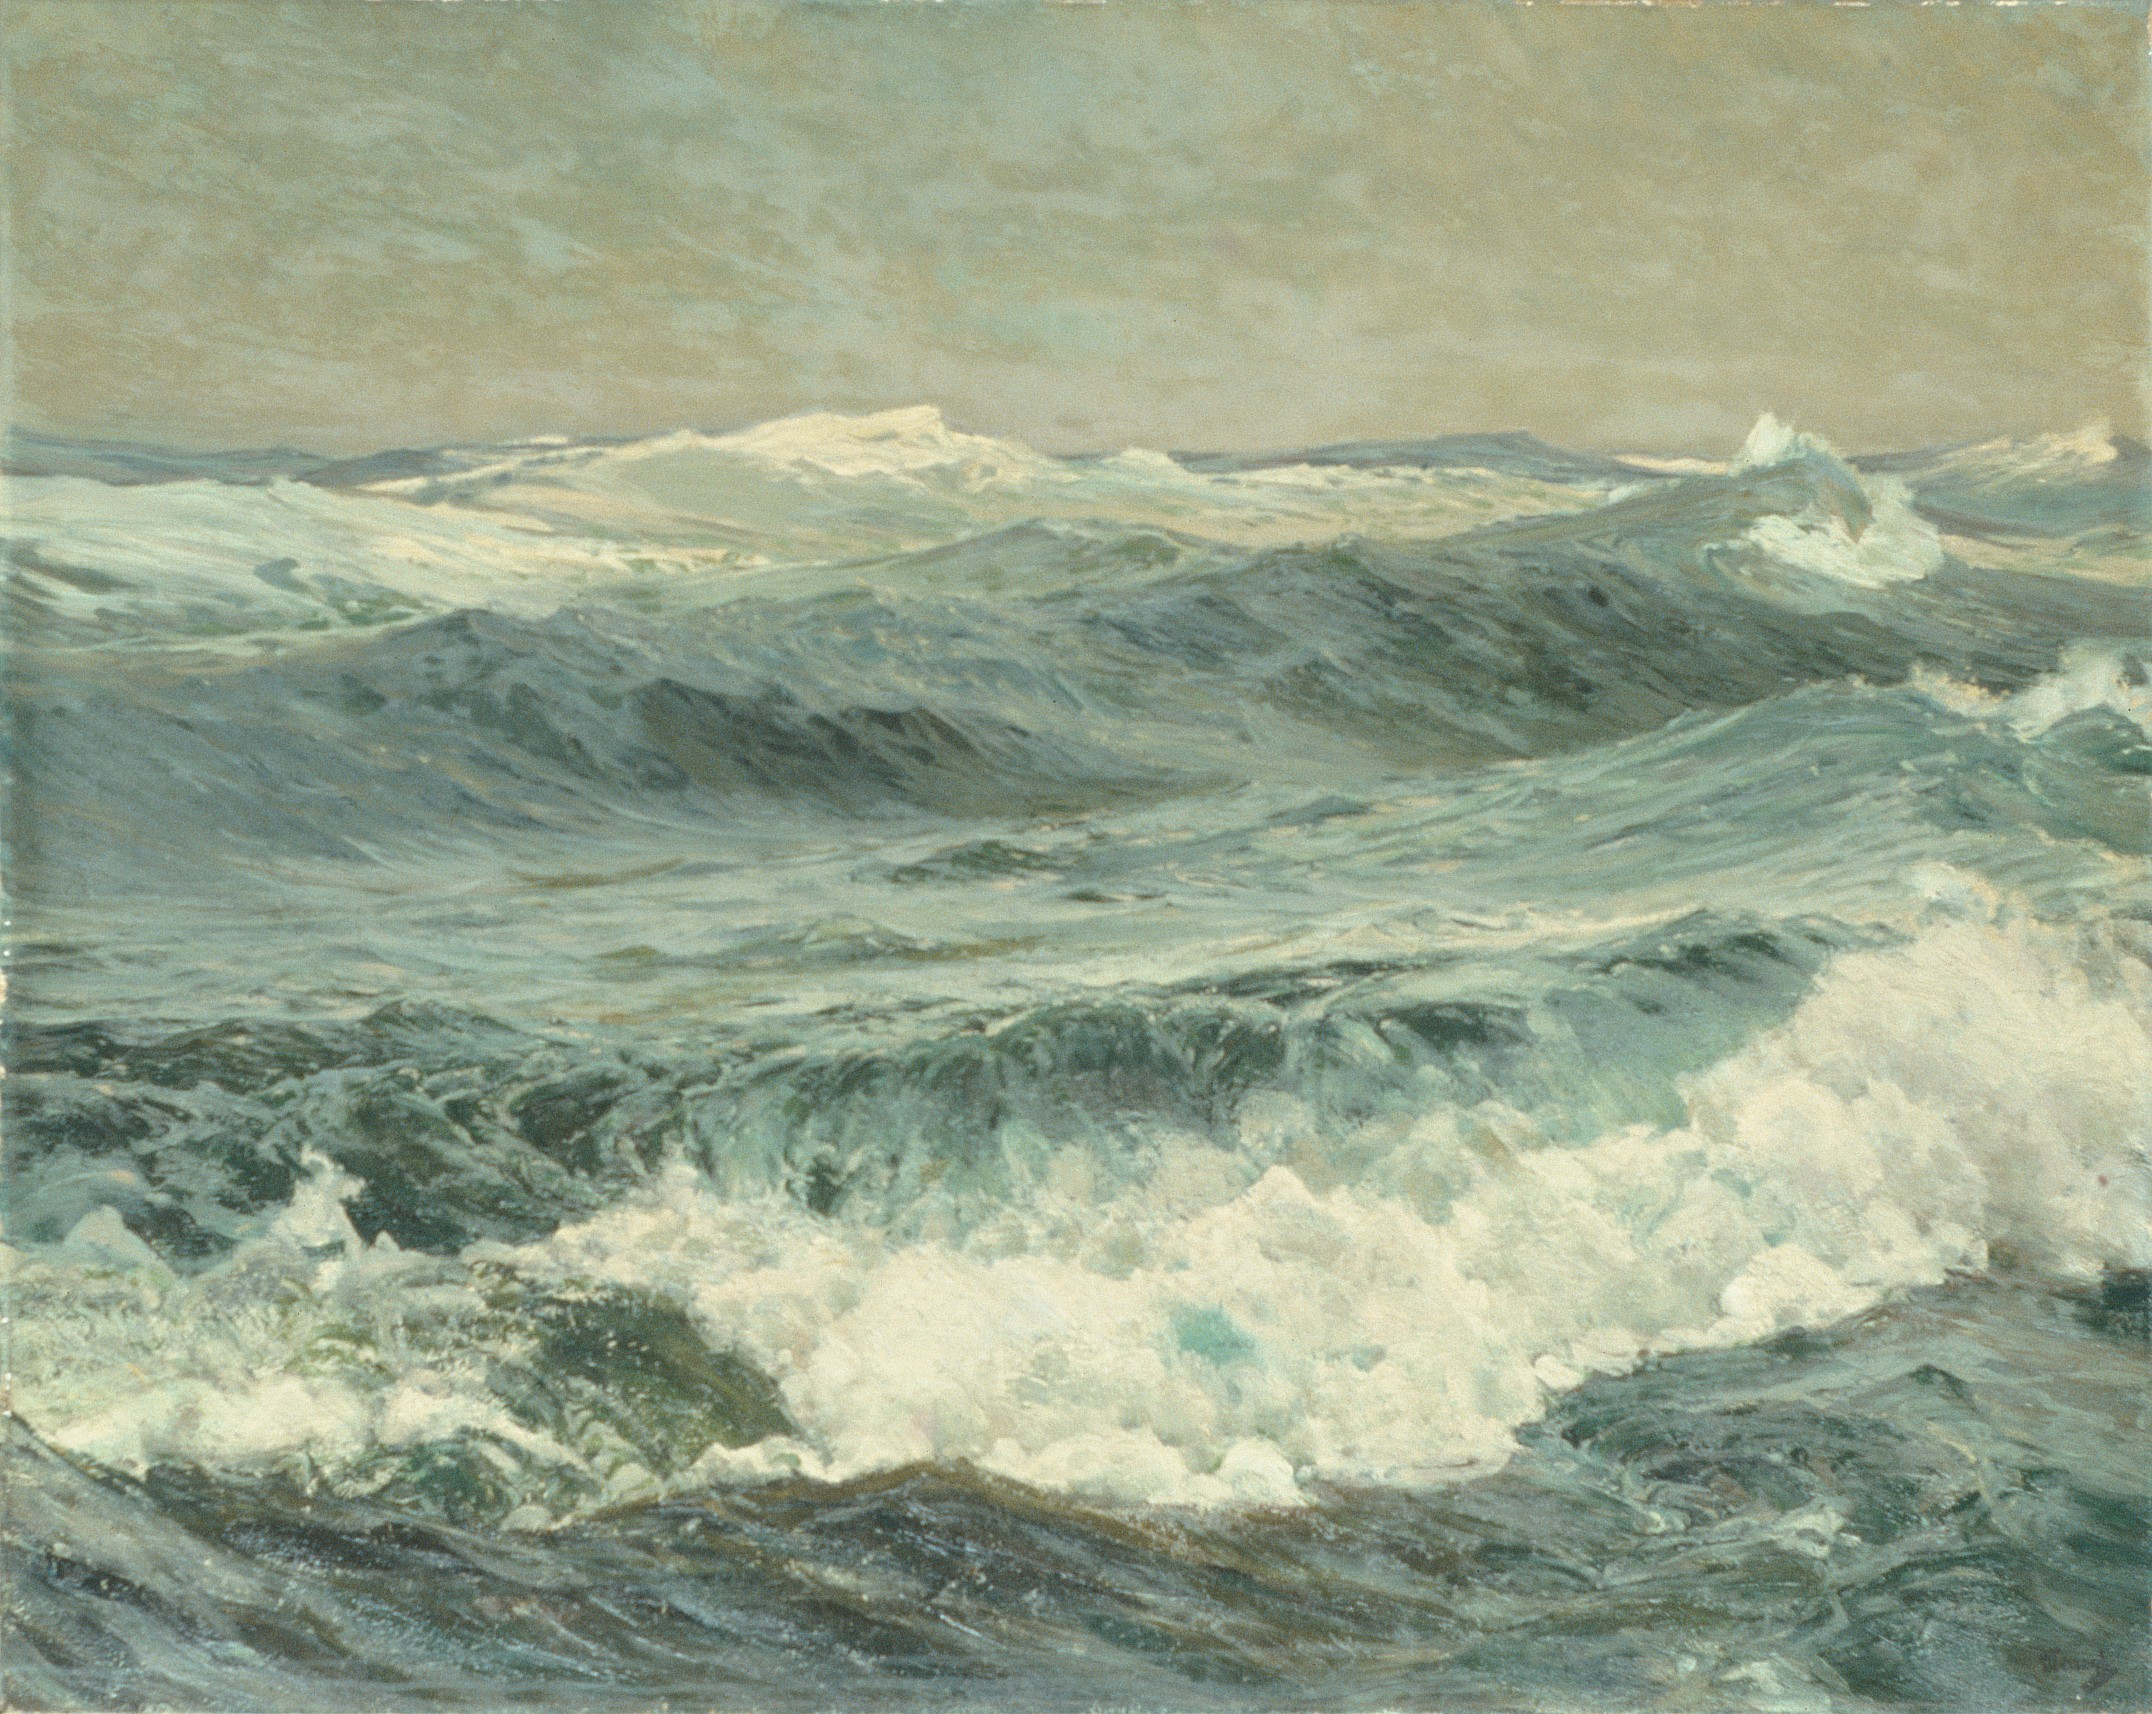 The Roaring Forties, a Seascape by Frederick Judd Waugh